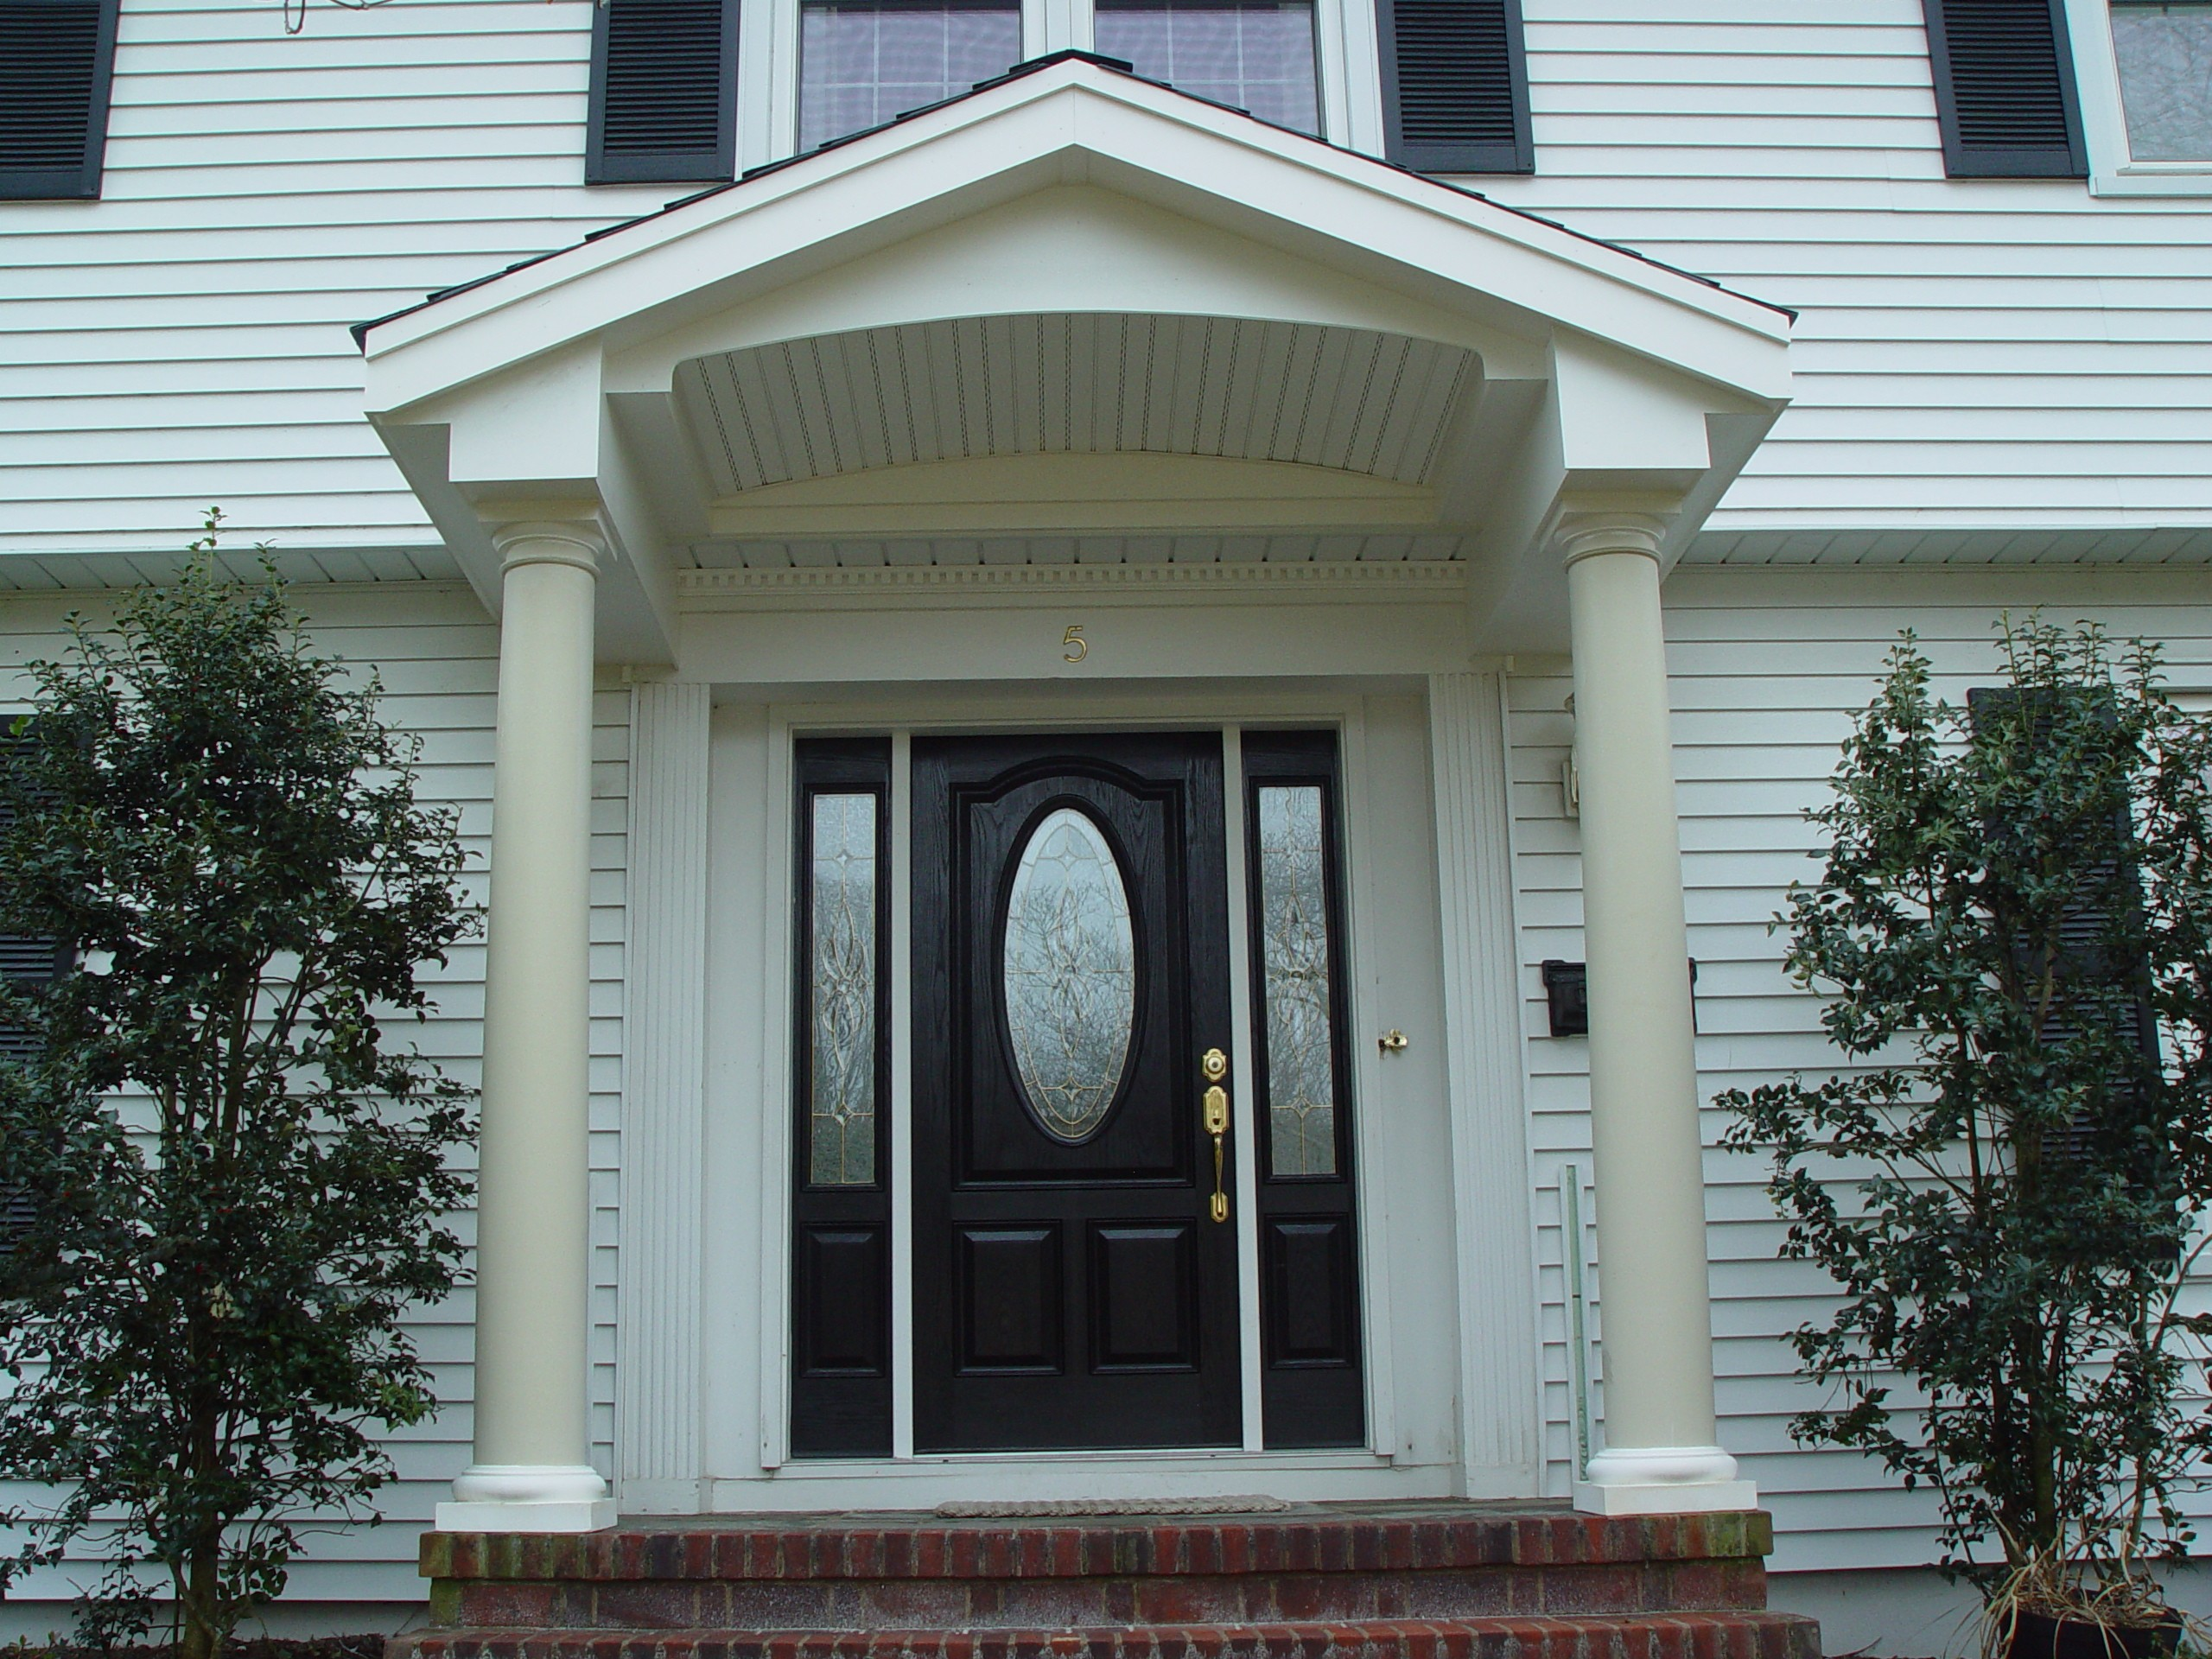 Front entry portico remodeling projects in new jersey Home exterior front design